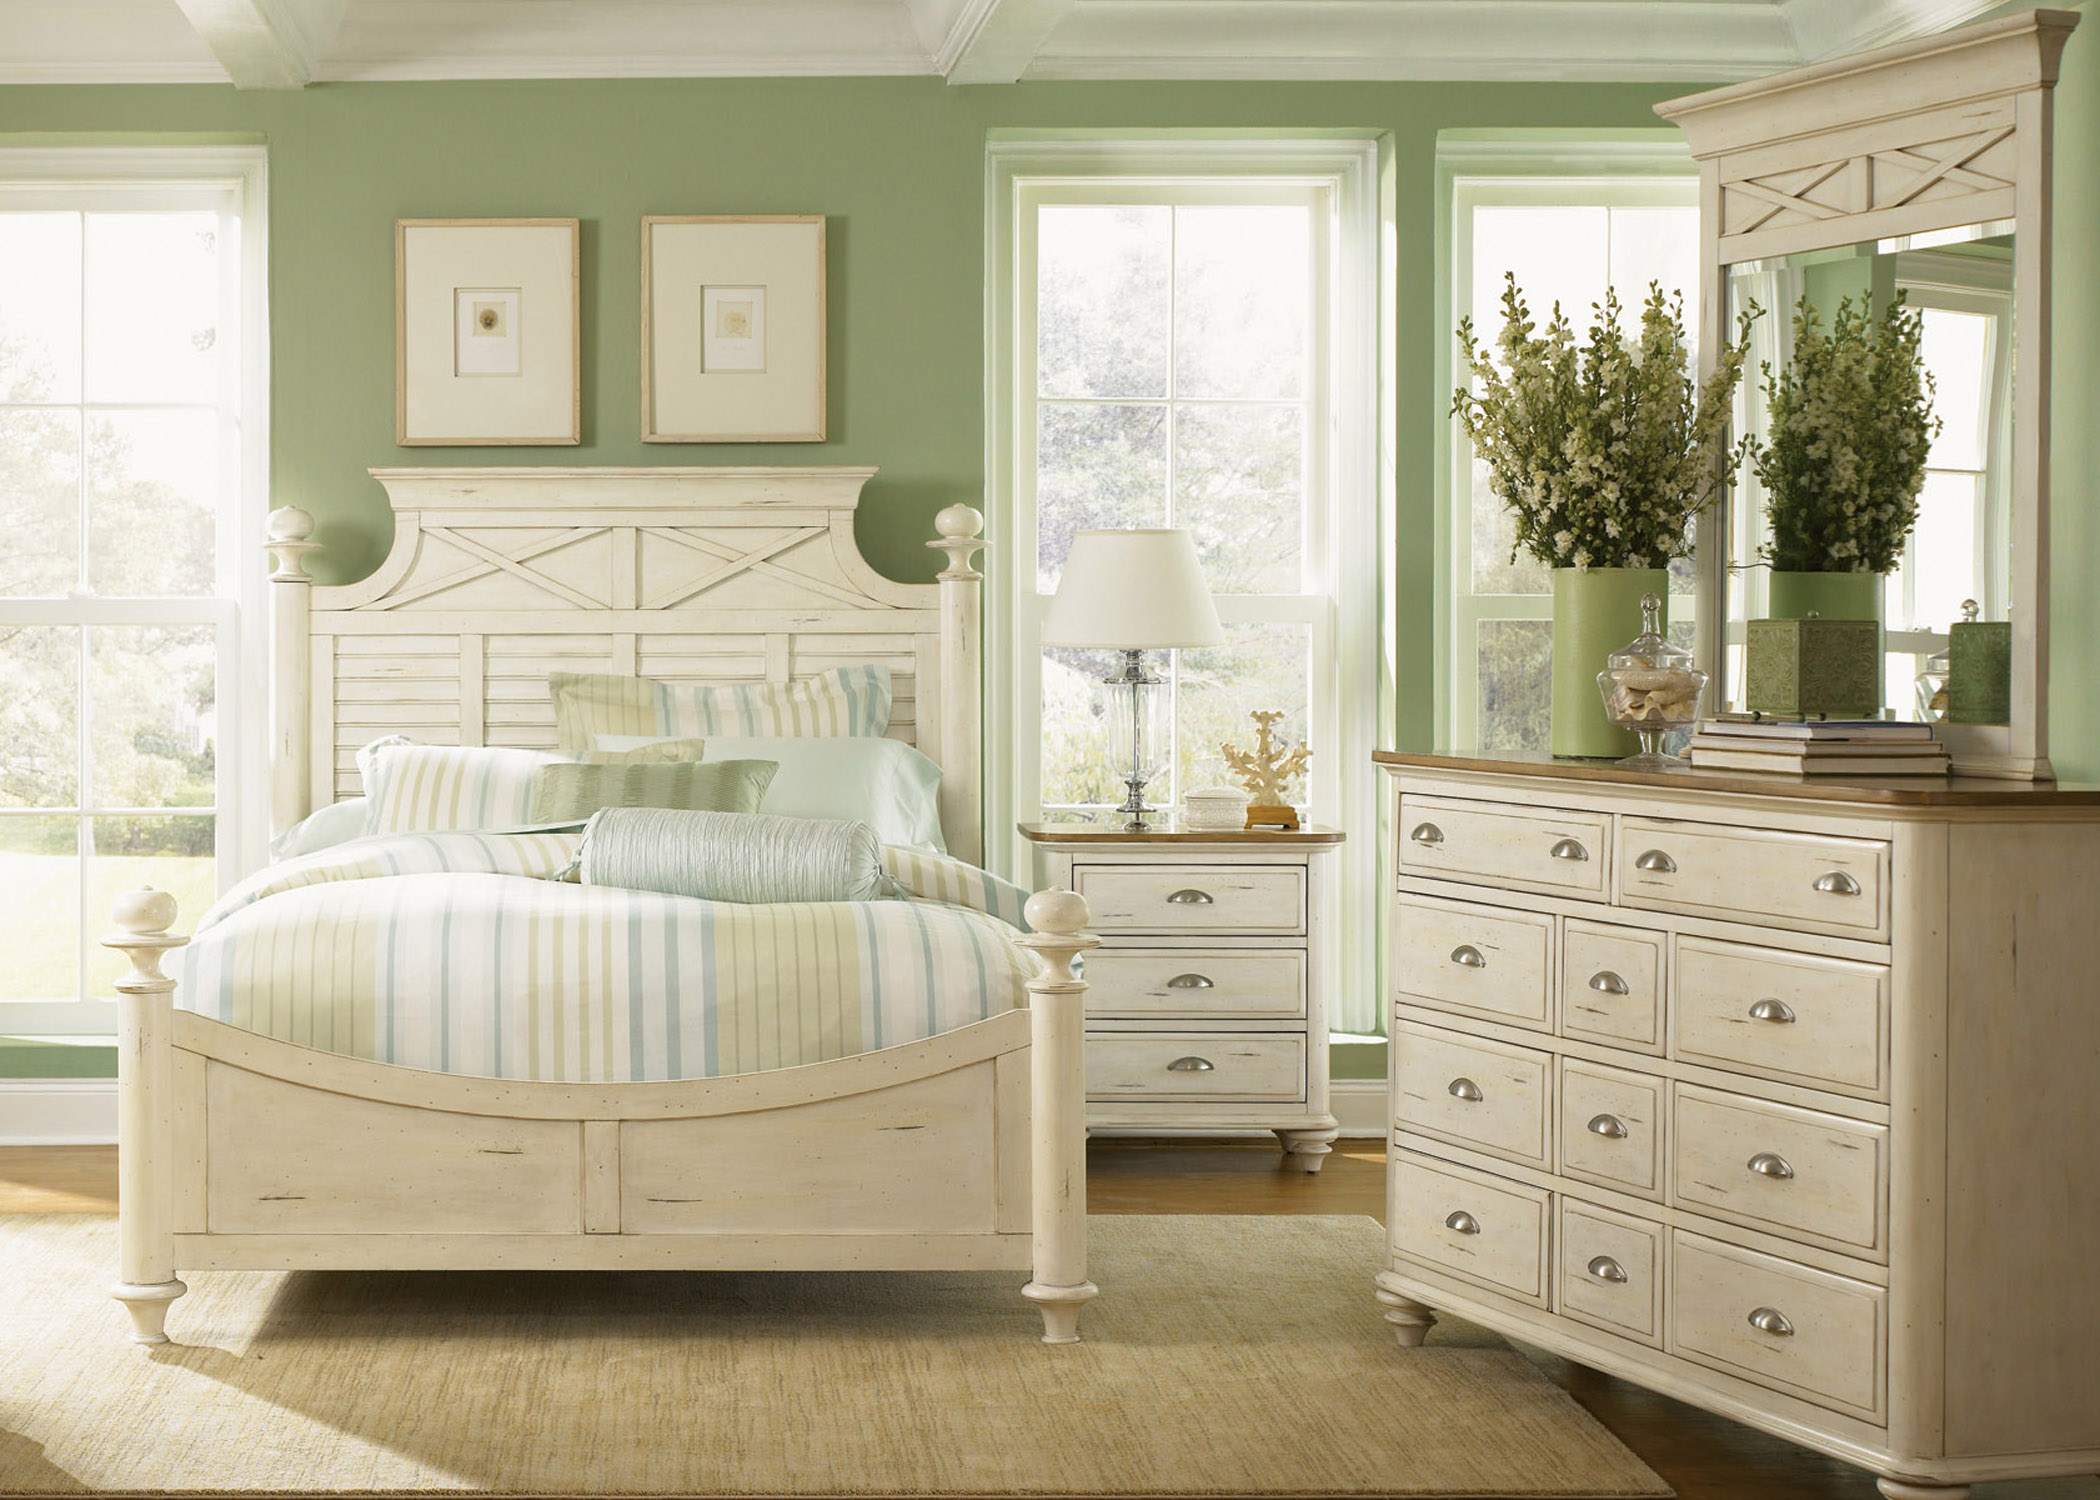 Liberty Furniture Ocean Isle  King Poster Bed, Dresser & Mirror, N/S  - Item Number: 303-BR-KPSDMN